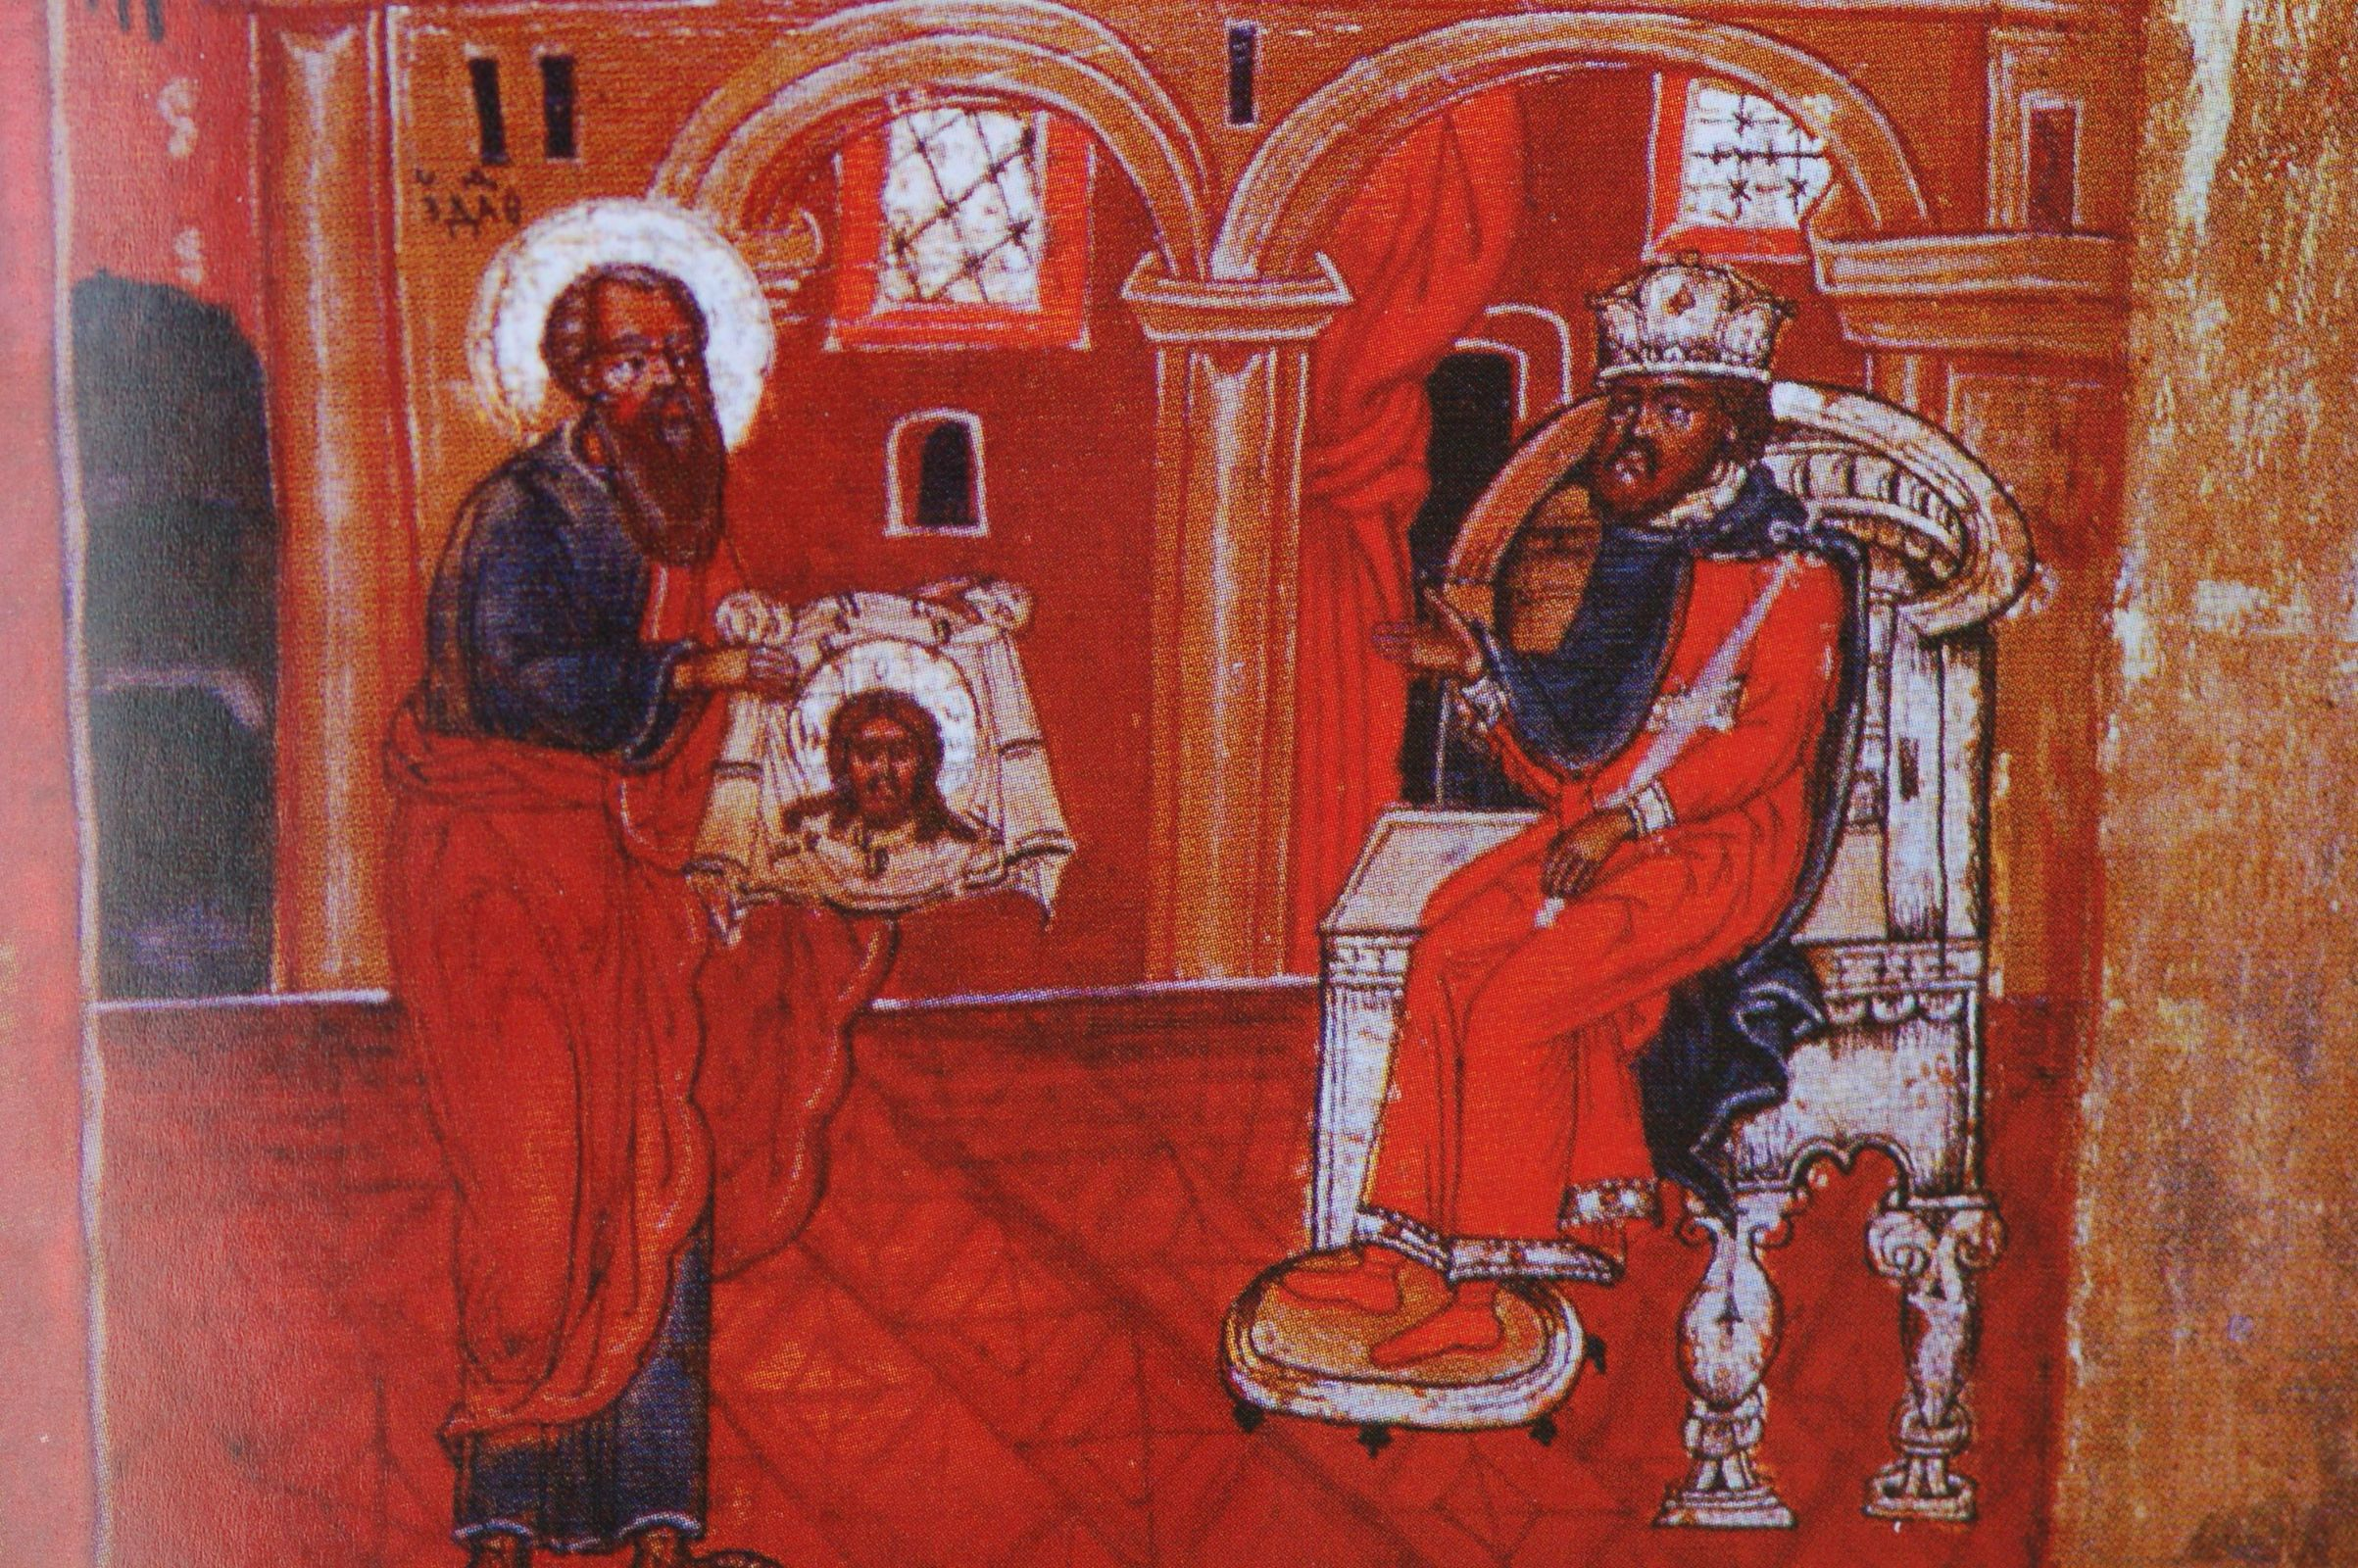 Photo 1. Disciple Tadeo offers mandylion to King Abgar 30 AD